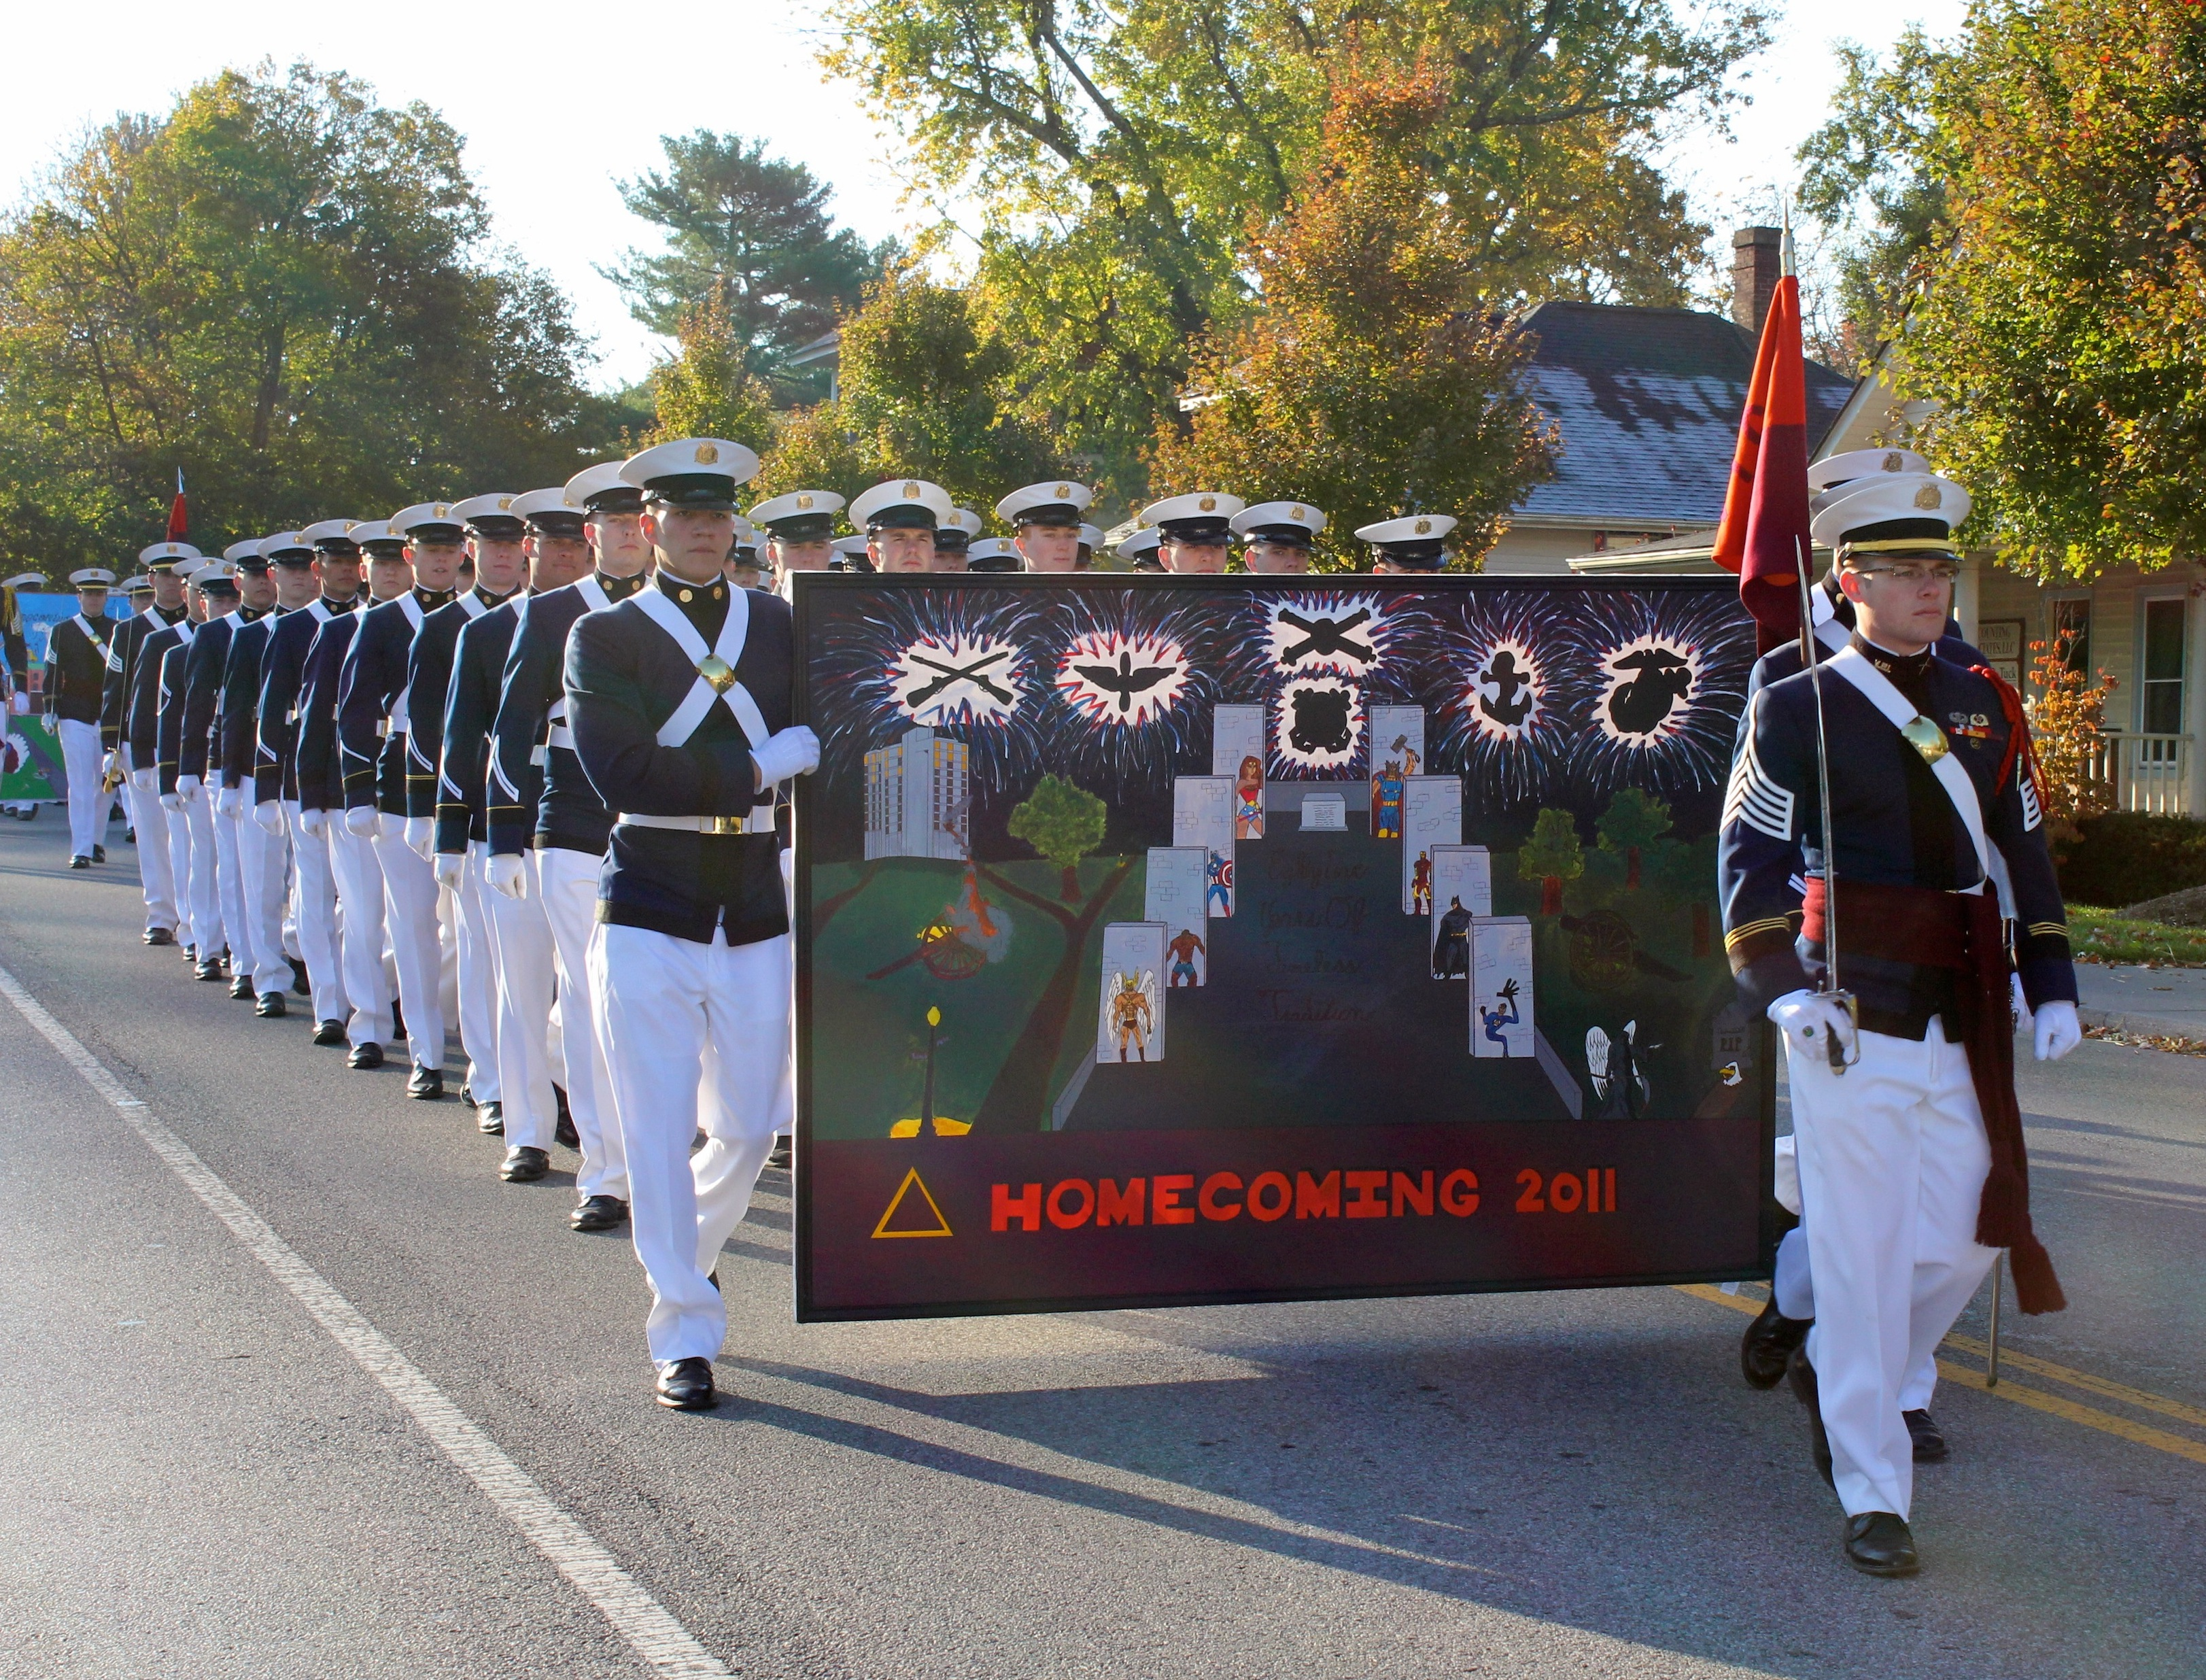 Membersof Delta Company of the Virginia Tech Corps of Cadets march in the 2011 Homecoming parade through downtown Blacksburg.